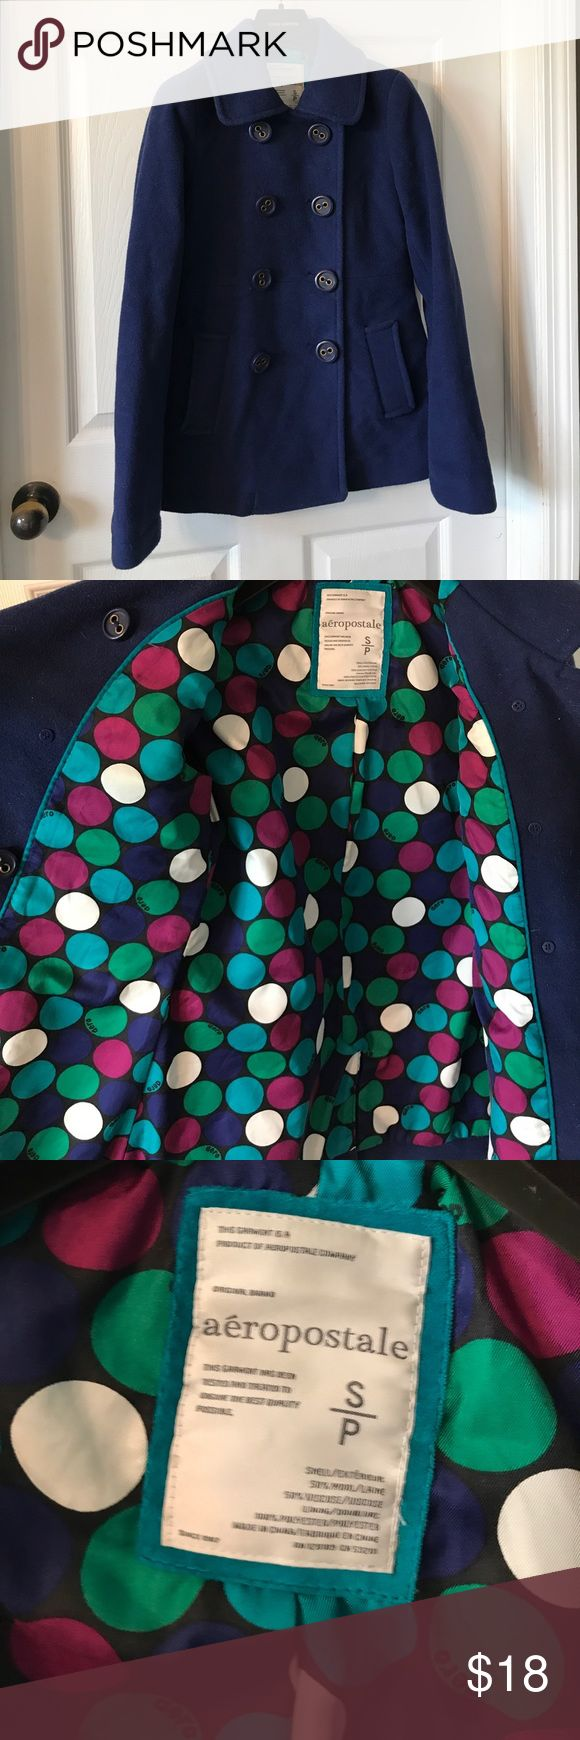 Aeropostale size small peacoat 50% wool 50% viscose 100 polyester lining. Some fuzzing as shown. The color is a True royal Blue. This is a size small in good used condition Aeropostale Jackets & Coats Pea Coats